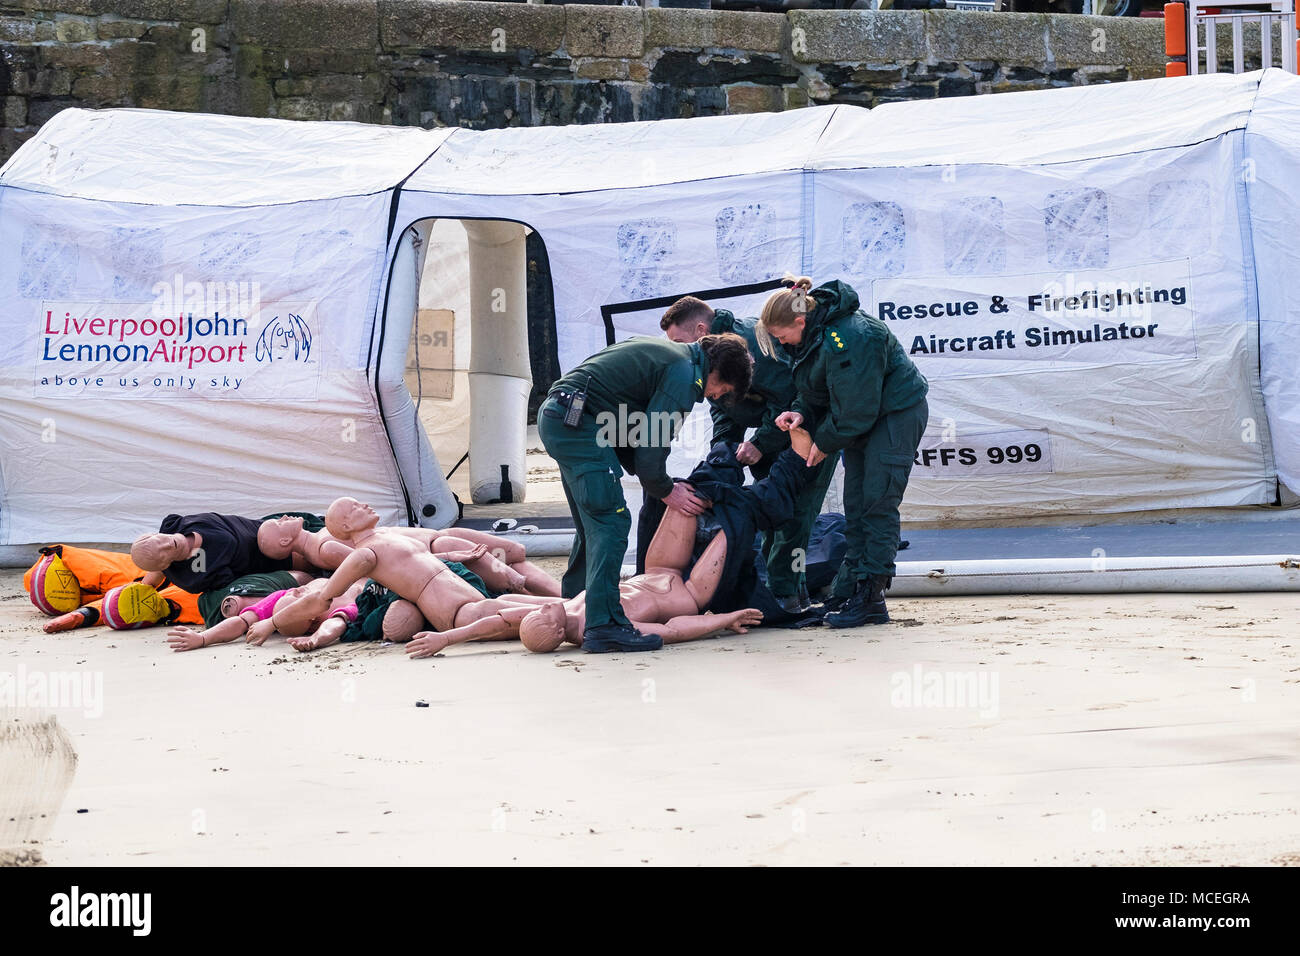 Paramedics putting clothes on mannequins in preparation for participating in a GMICE (Good Medicine in Challenging Environments) major incident exerci - Stock Image